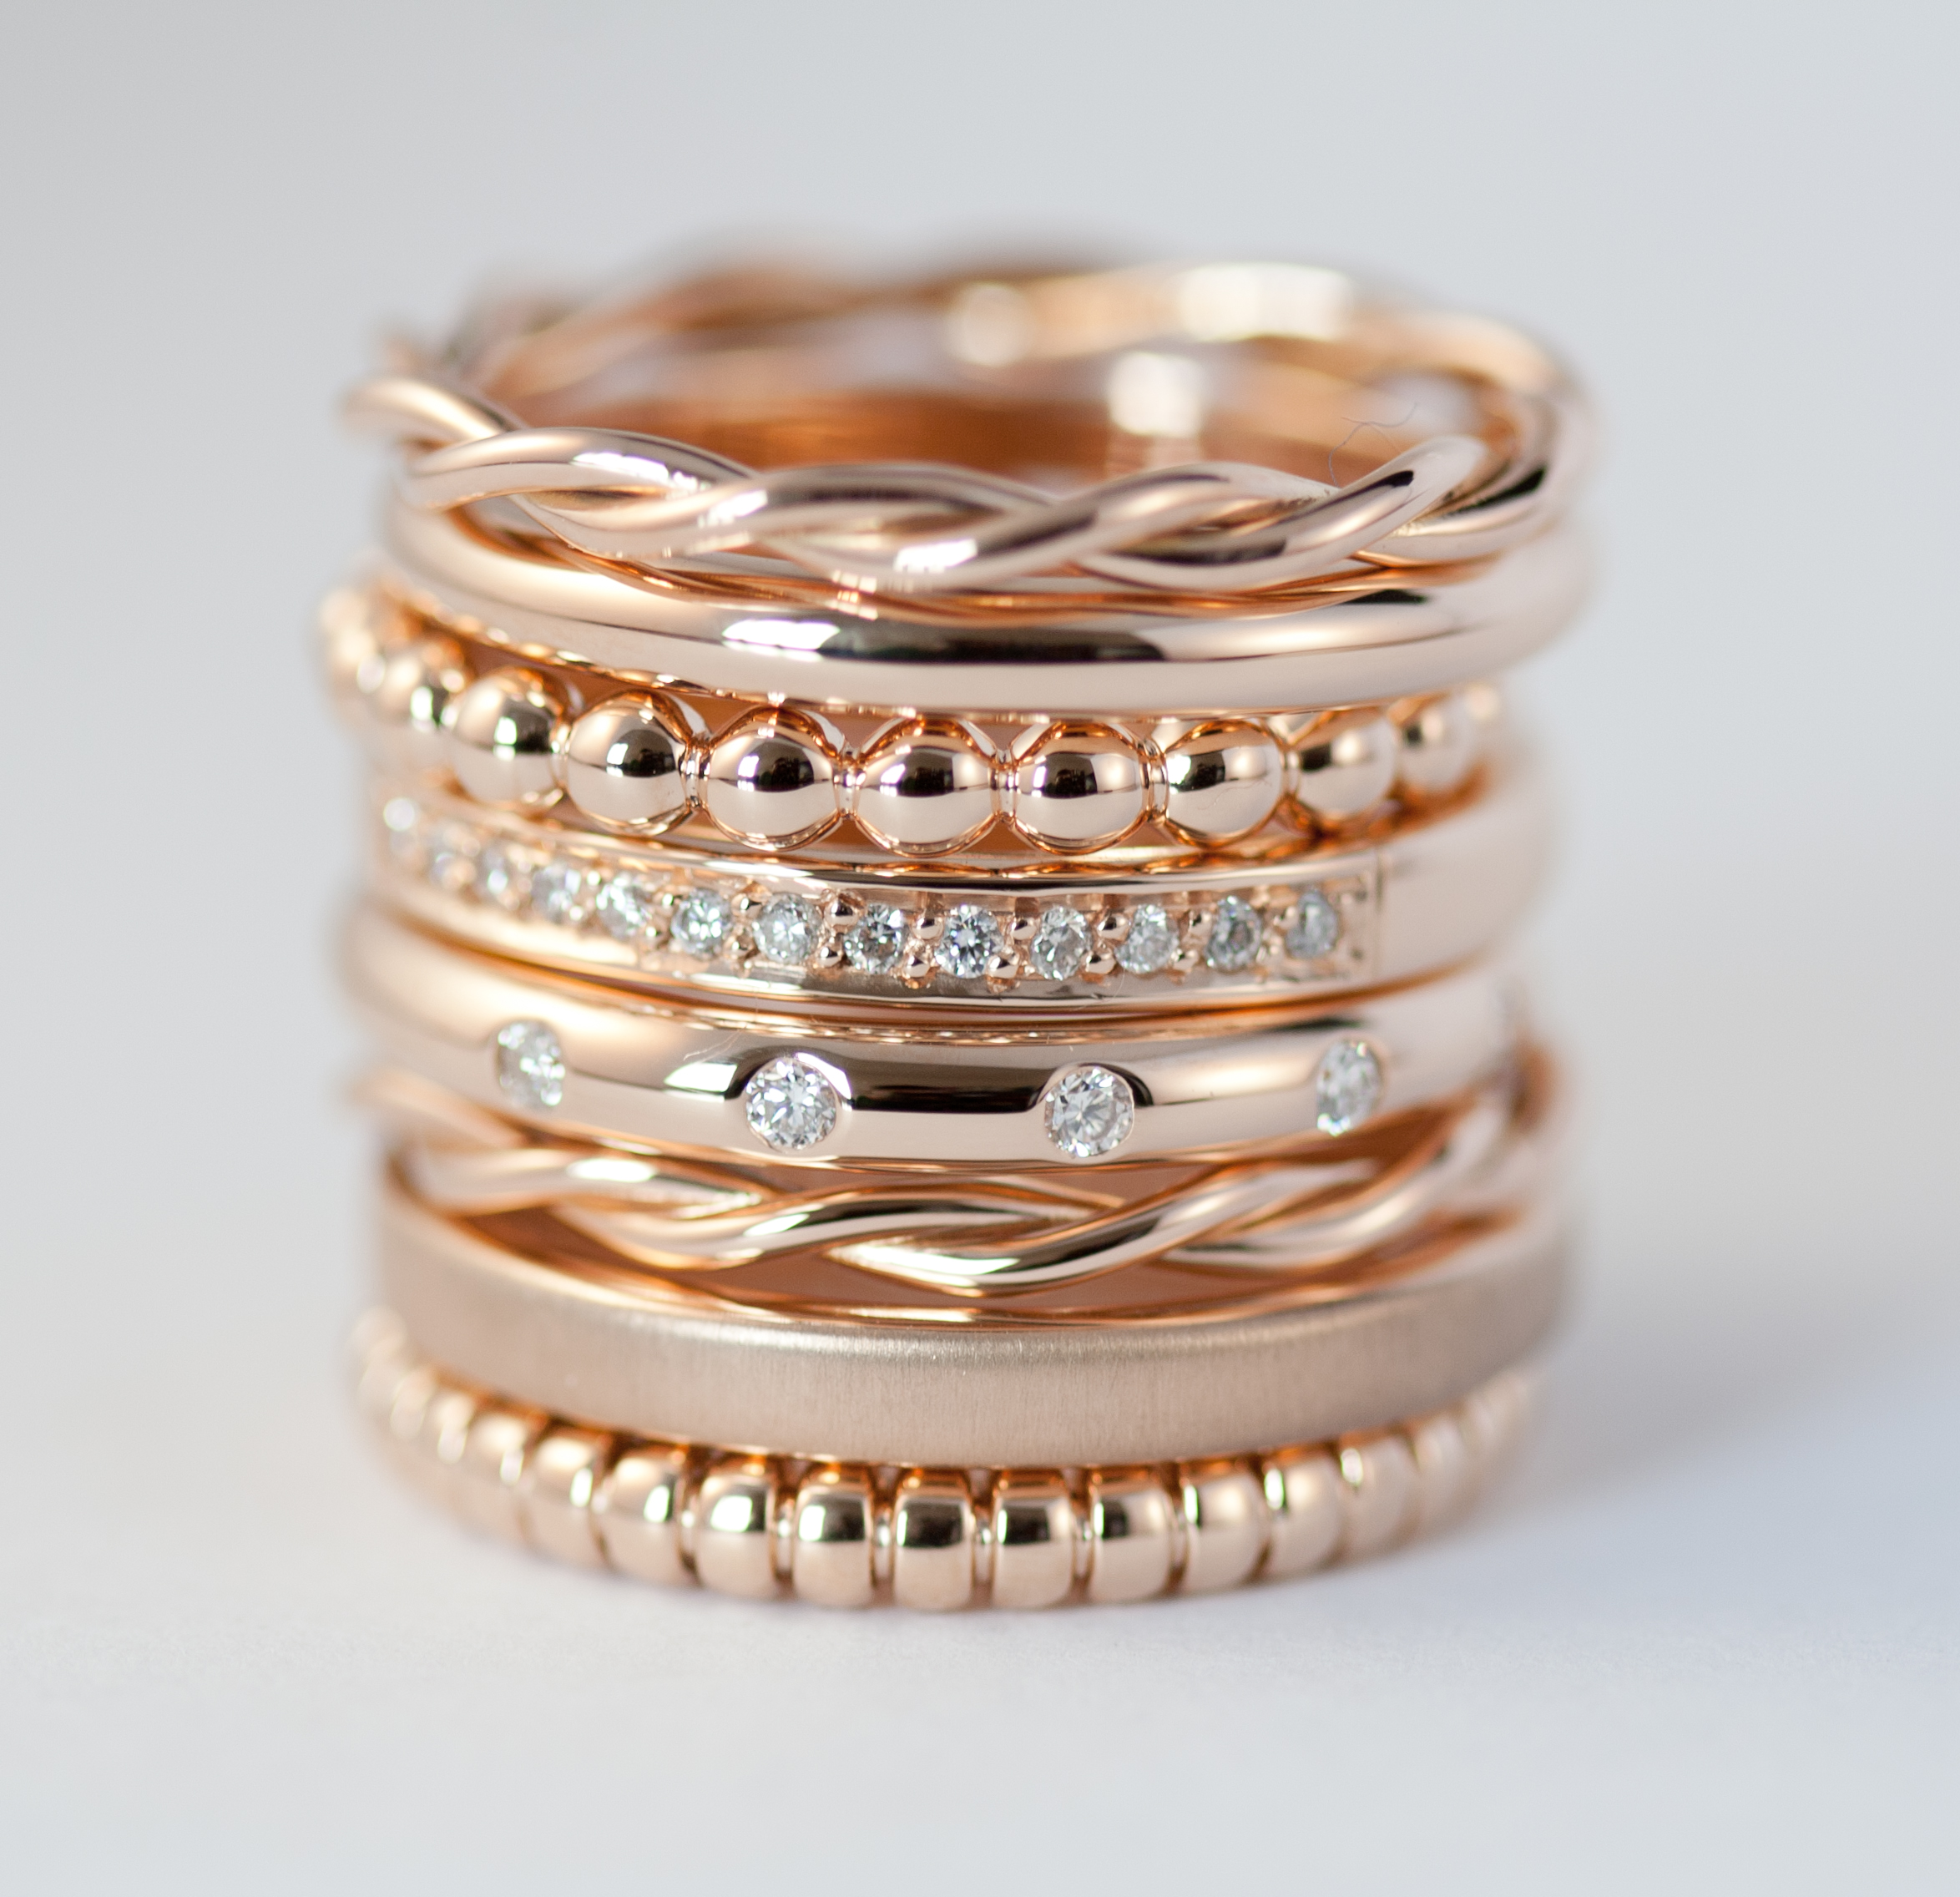 18ct gold & diamond stack ring